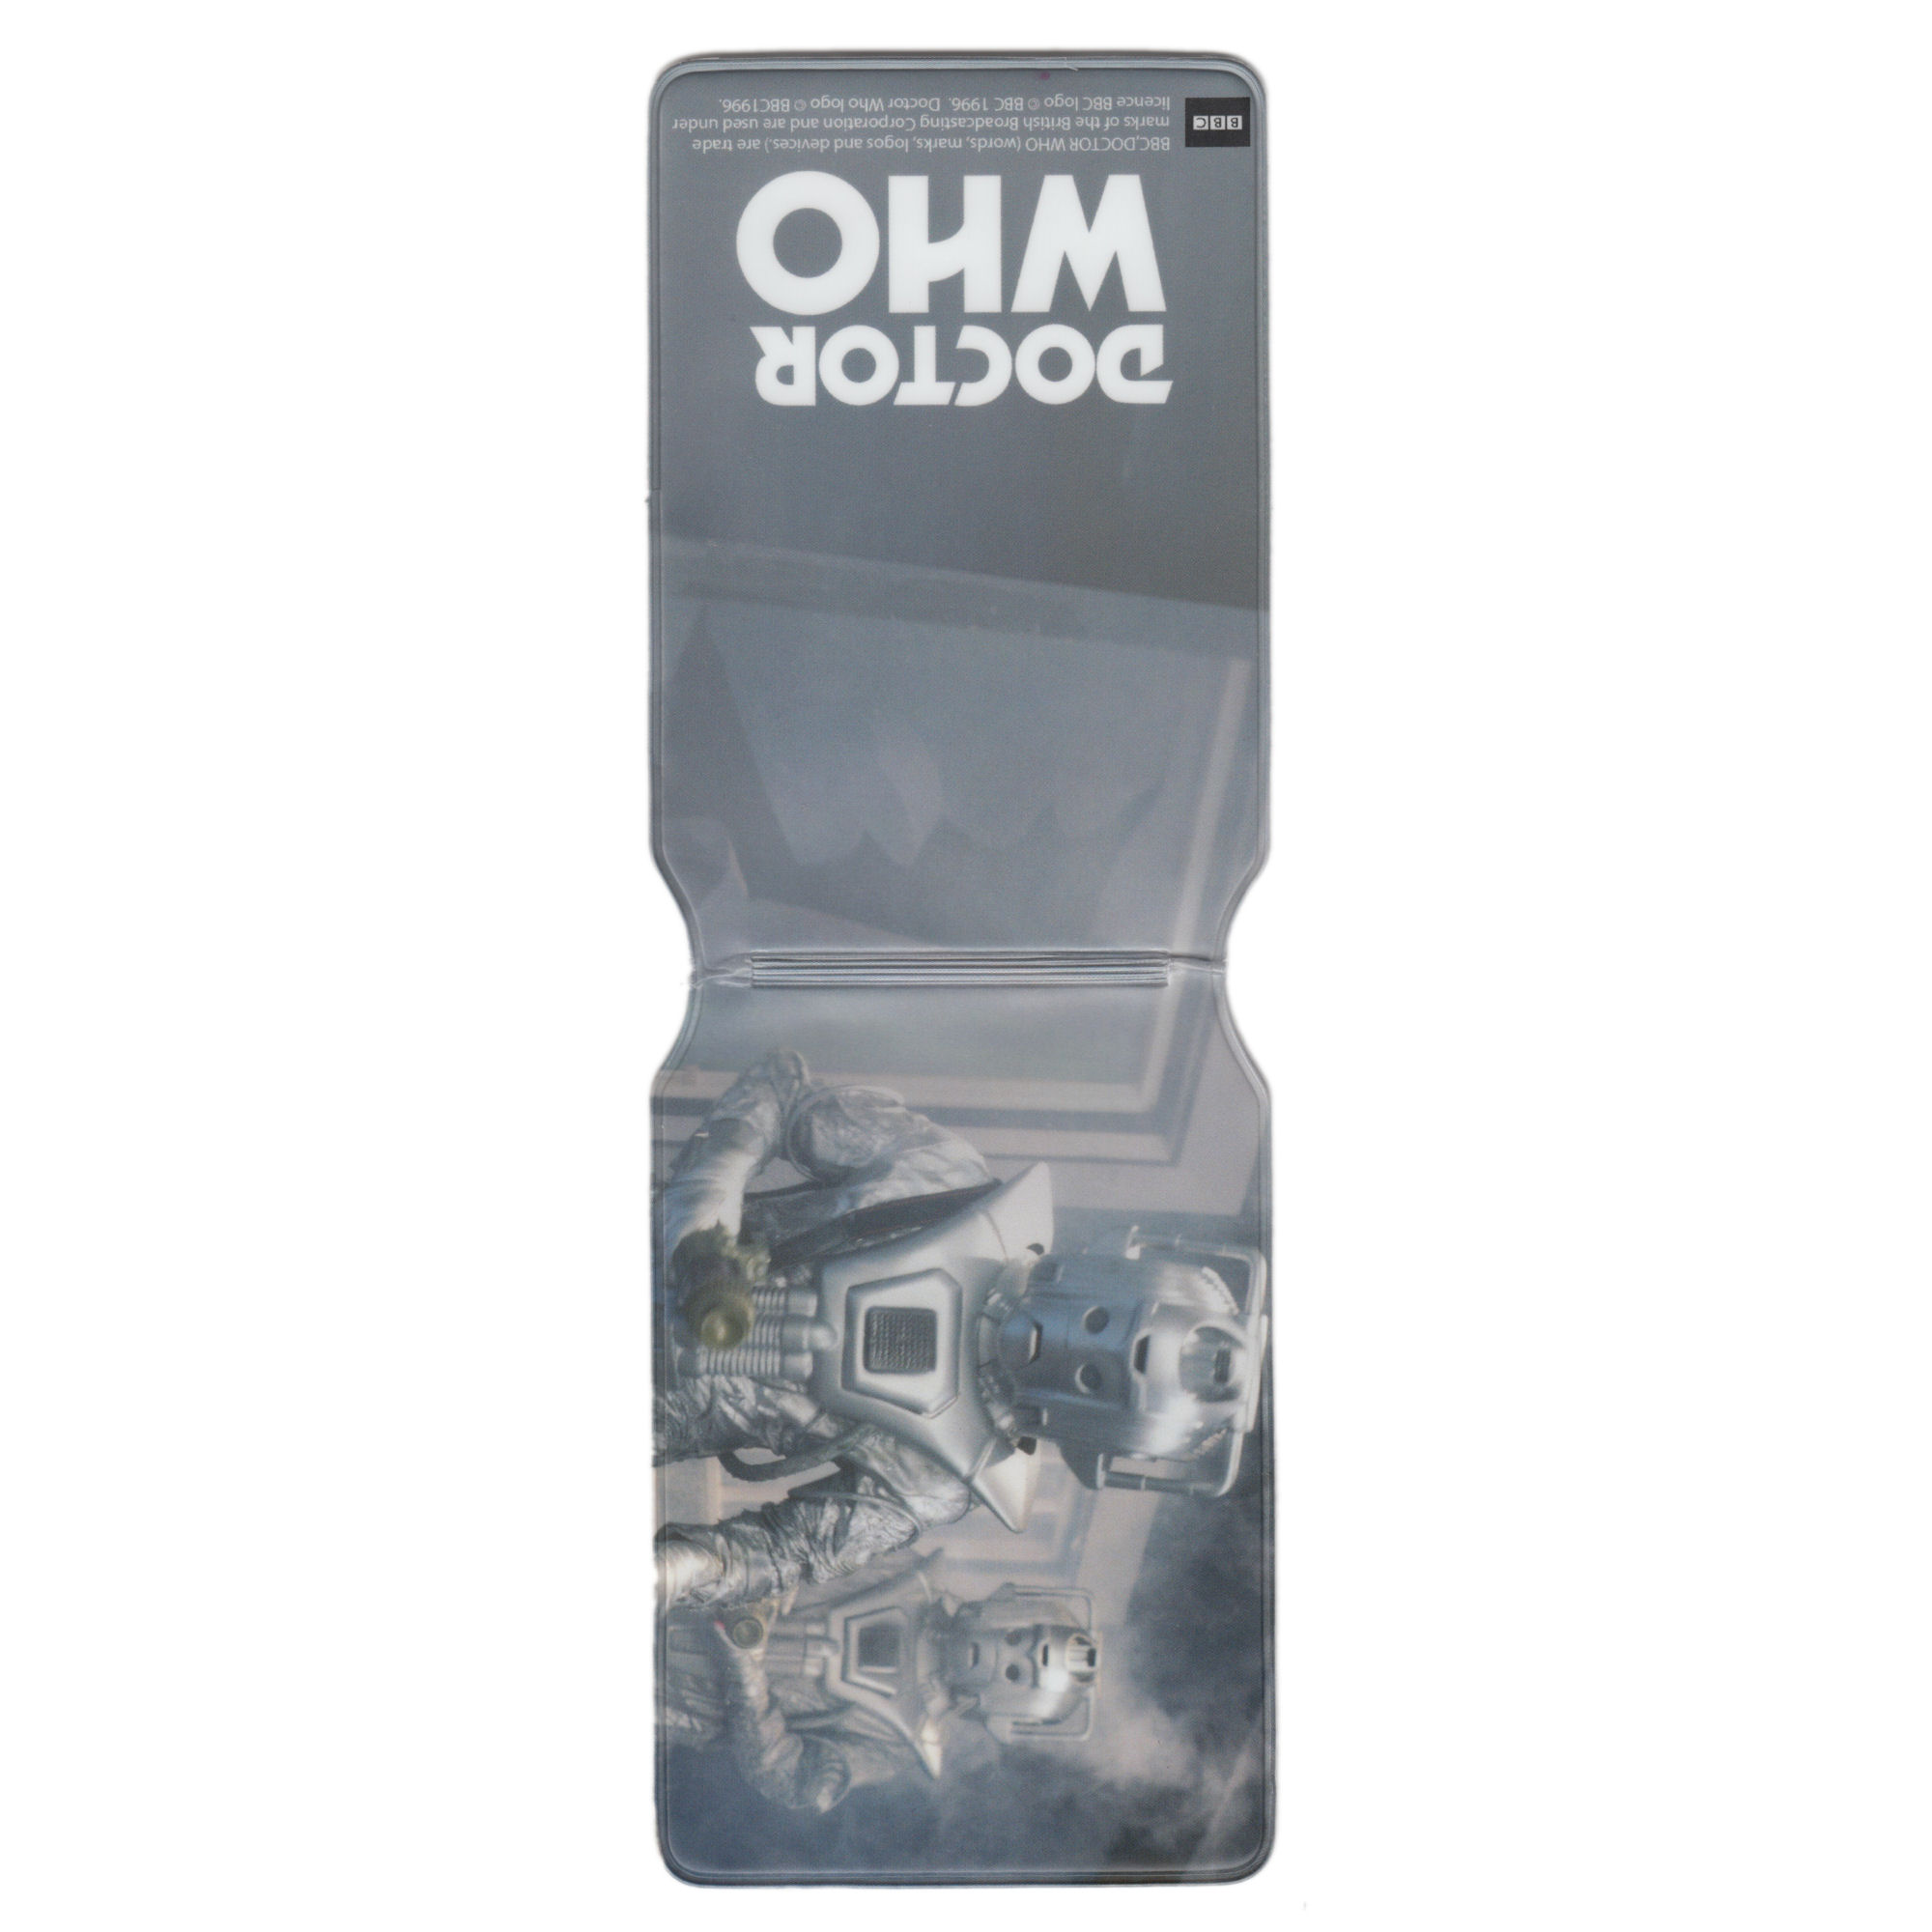 Doctor Who (Classic Cyberman Duo) Travel/Oyster Card Holder